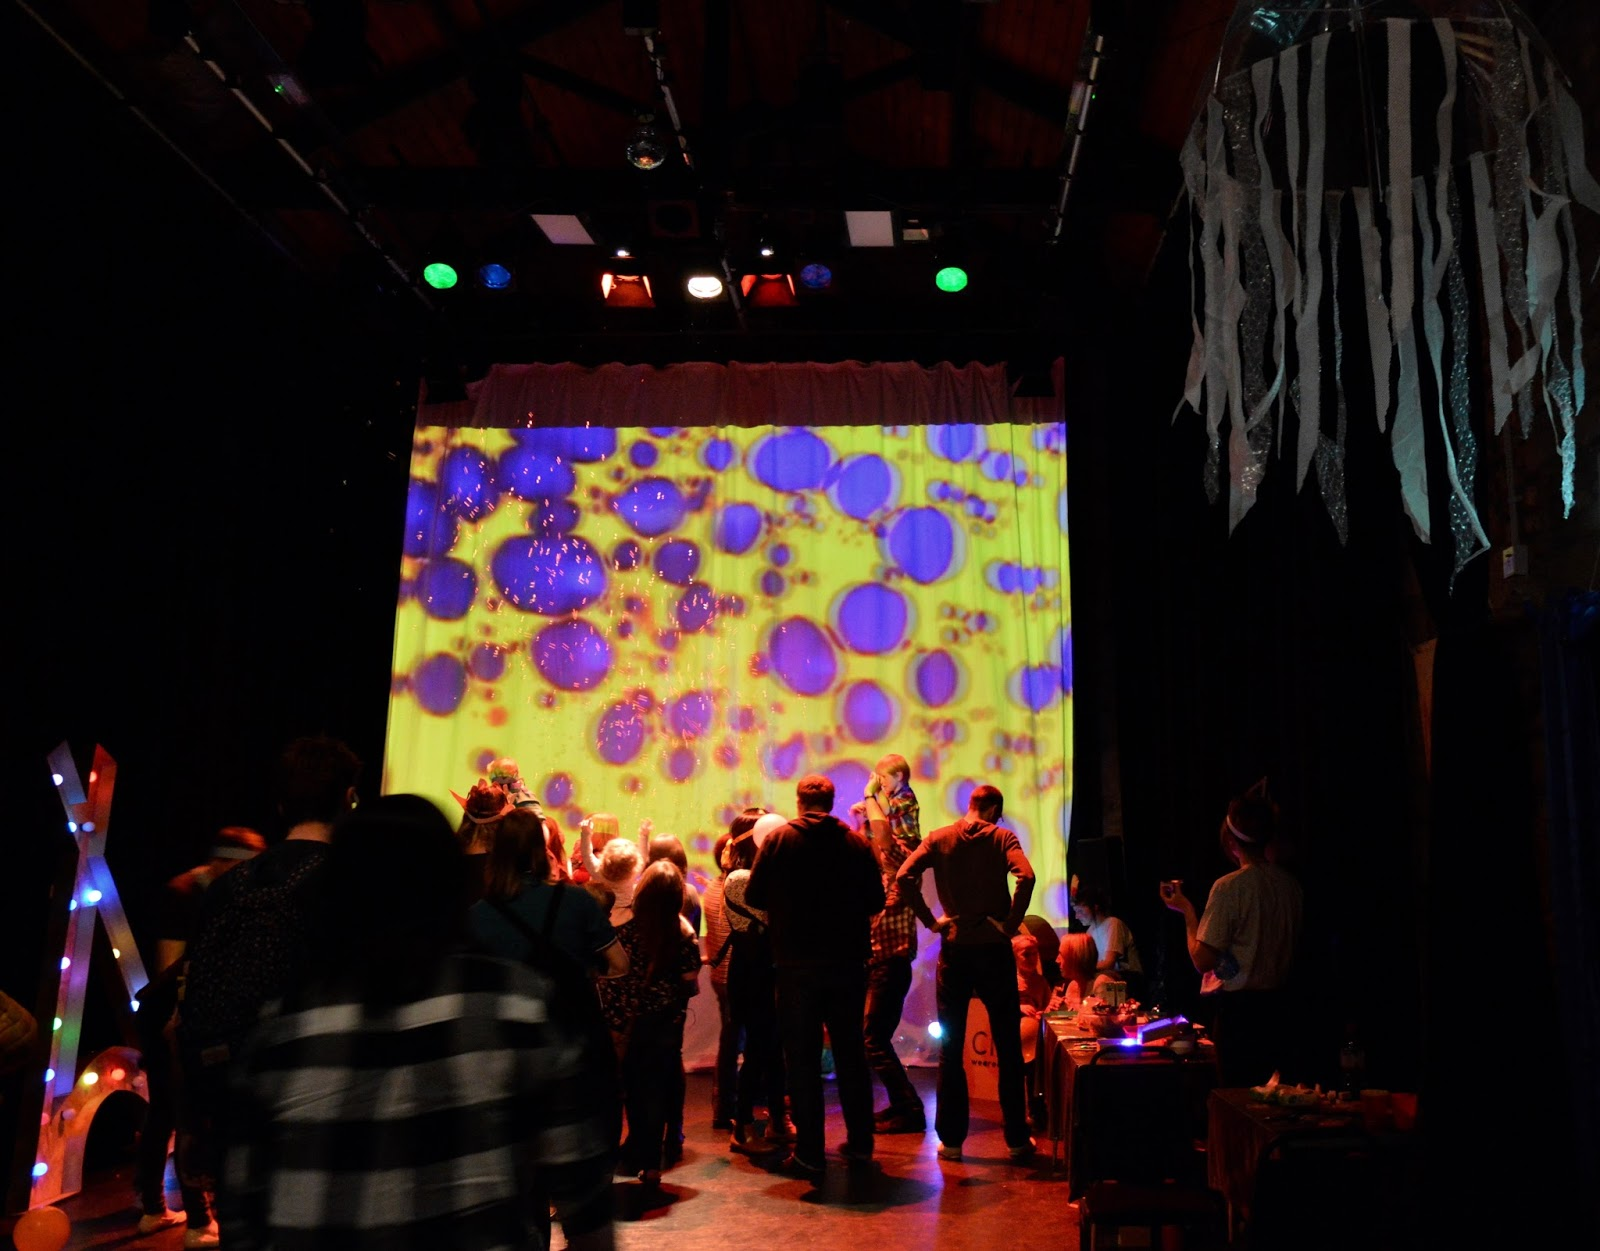 Arts Centre Washington | Events for Families (feat. Chalk's 1960's Family Rave) - rave backdrop